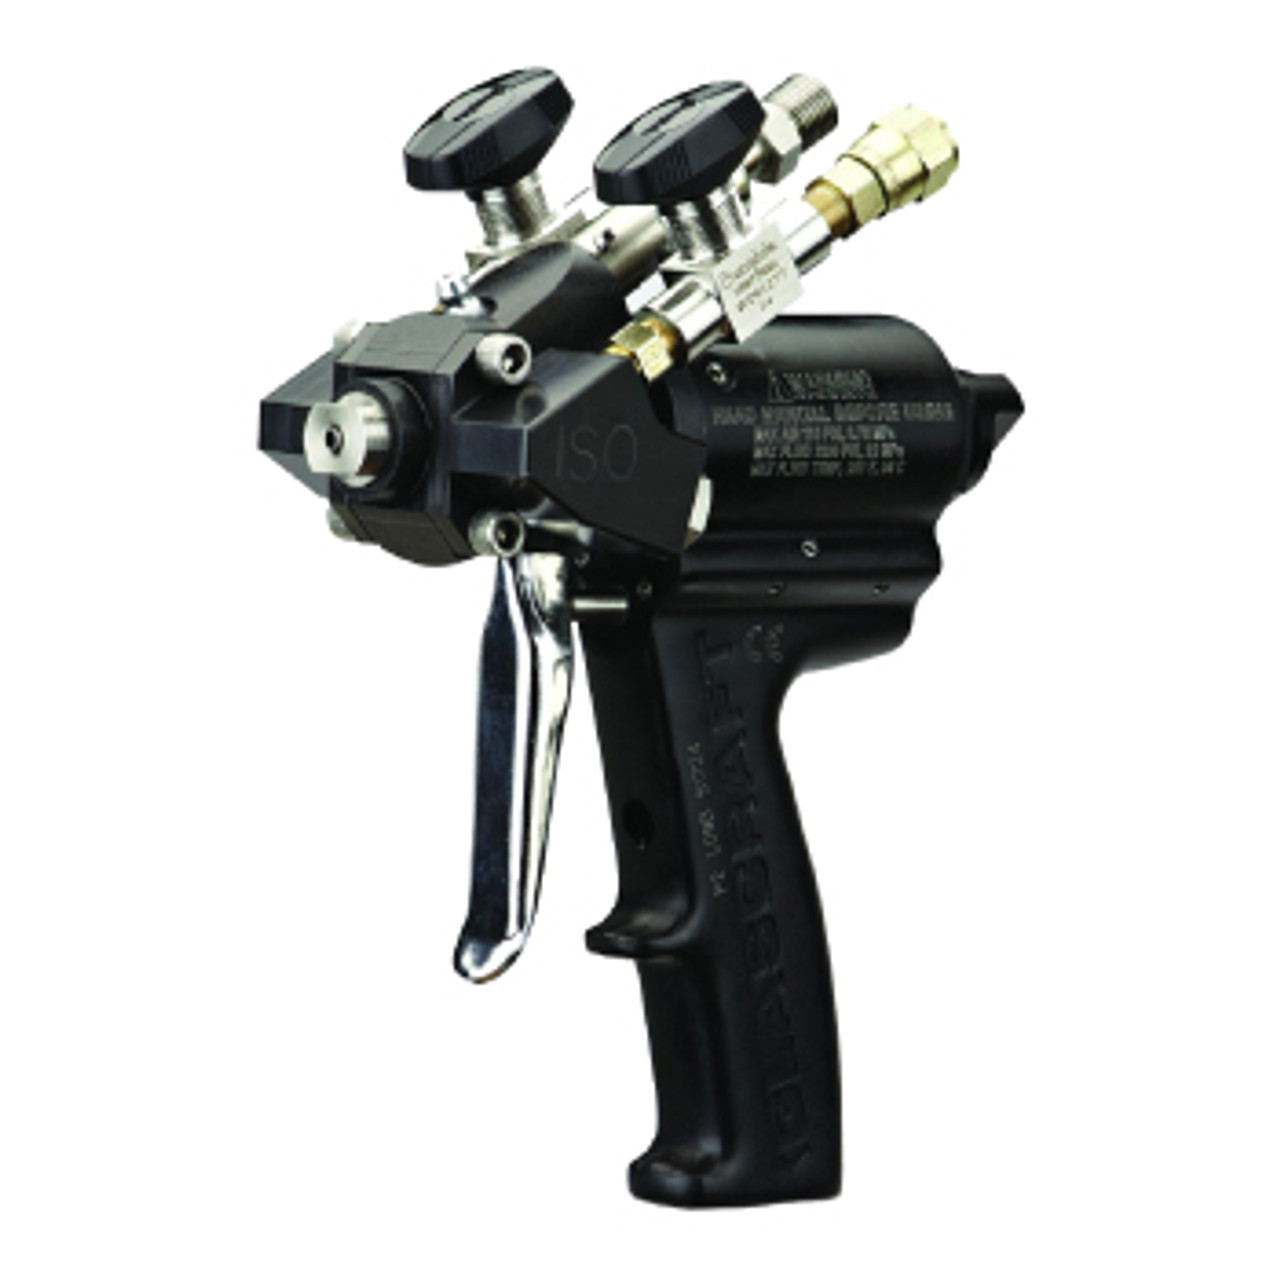 Graco Probler 2 Elite Spray Gun